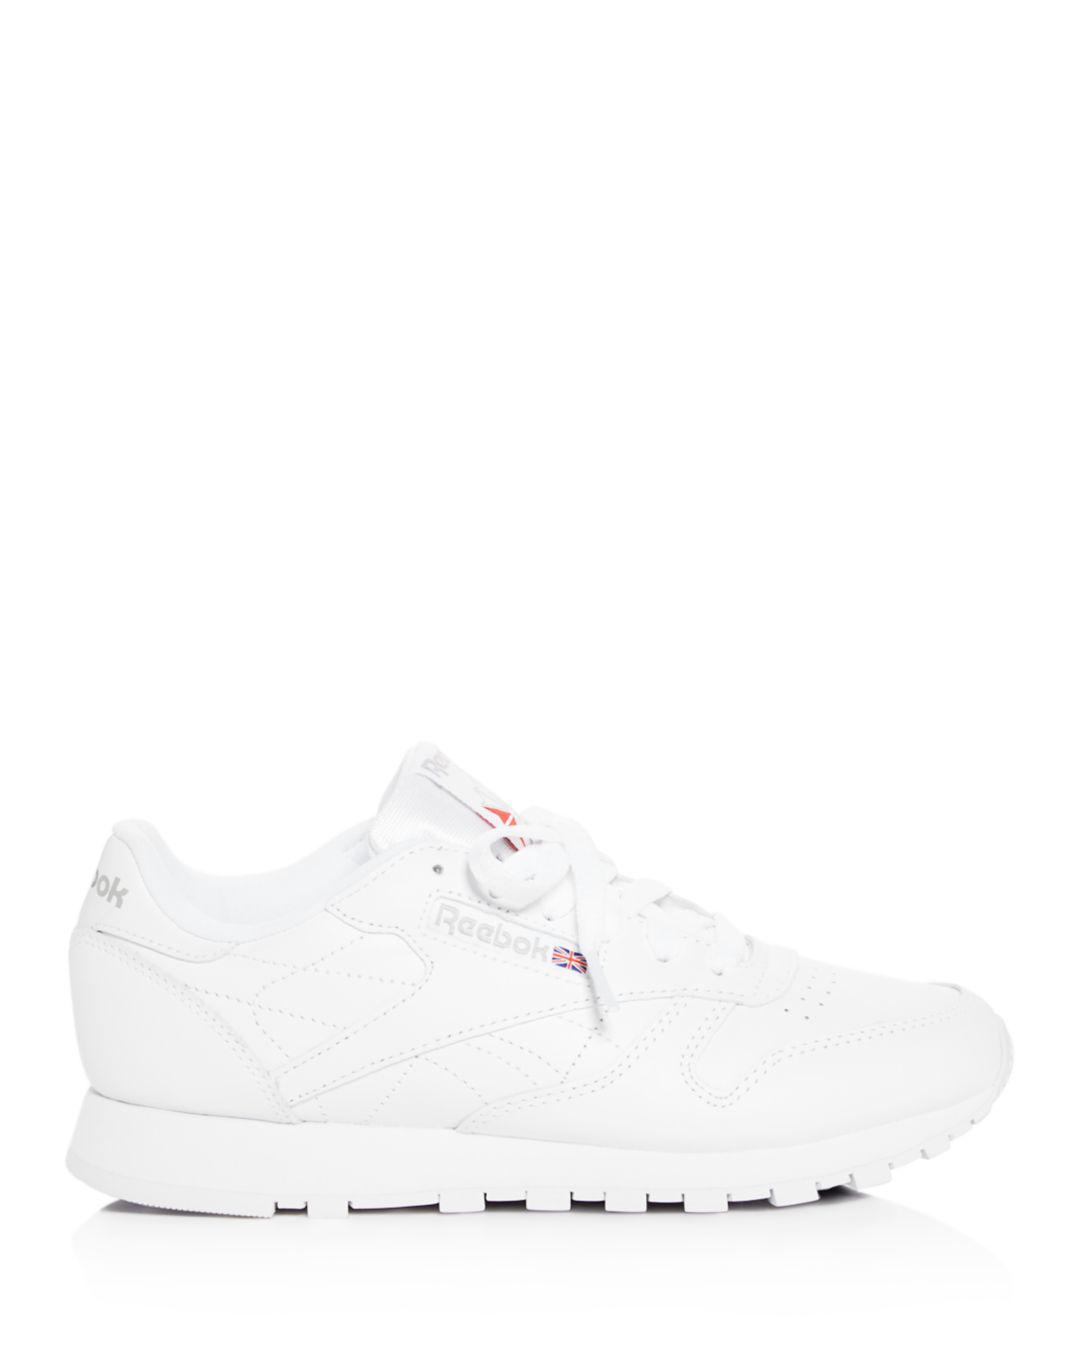 a08b5cbf09c Lyst - Reebok Women s Classic Leather Lace Up Sneakers in White